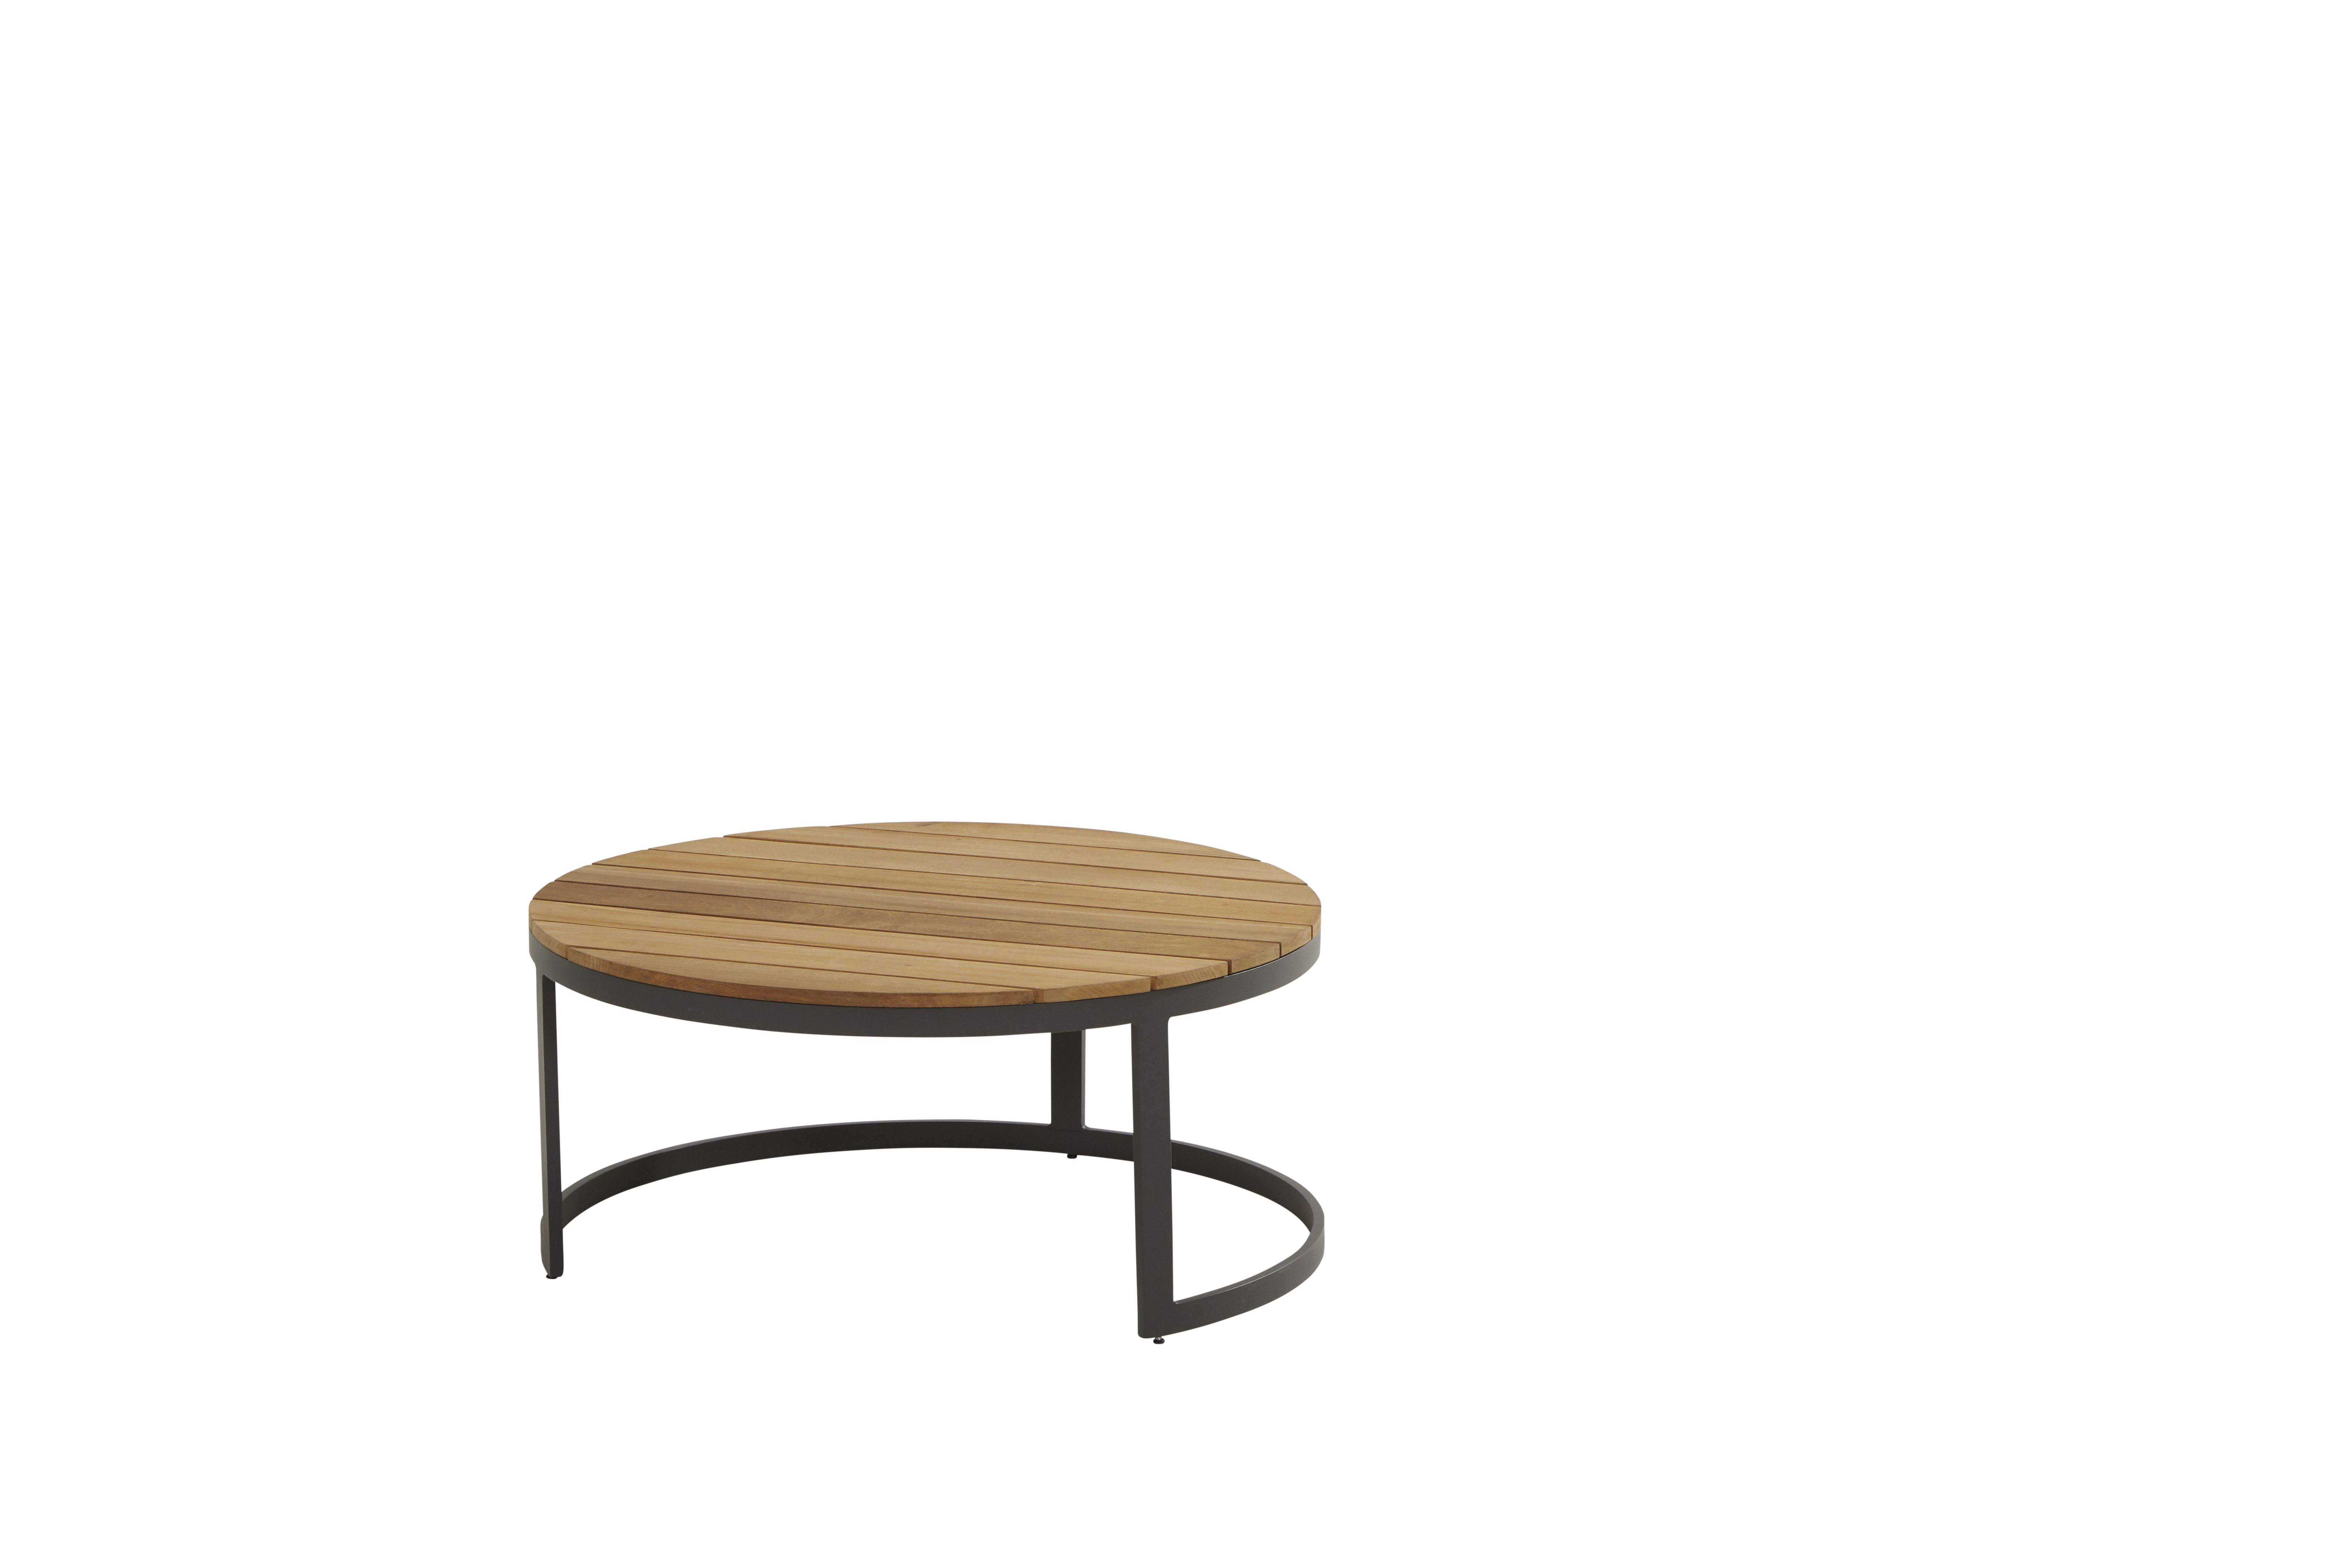 91024_ Stonic set of 2 coffee tables 80 and 60 cm - TEAK ONLY